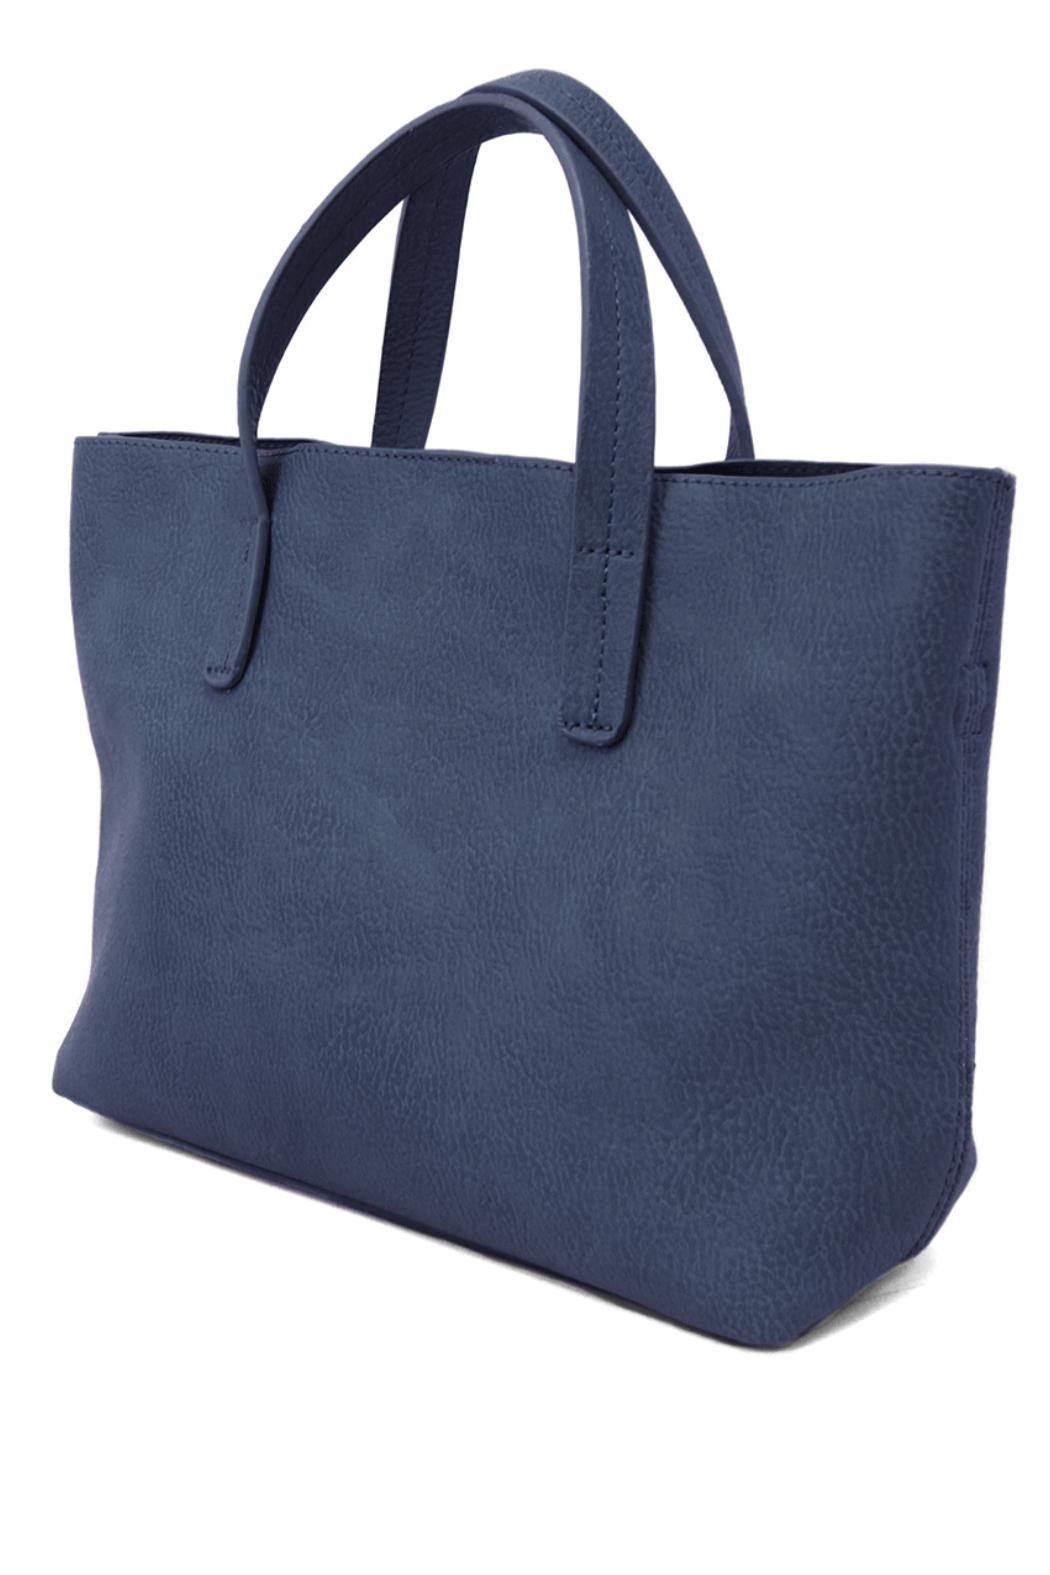 Blue Tote Bag - Best Bag 2017